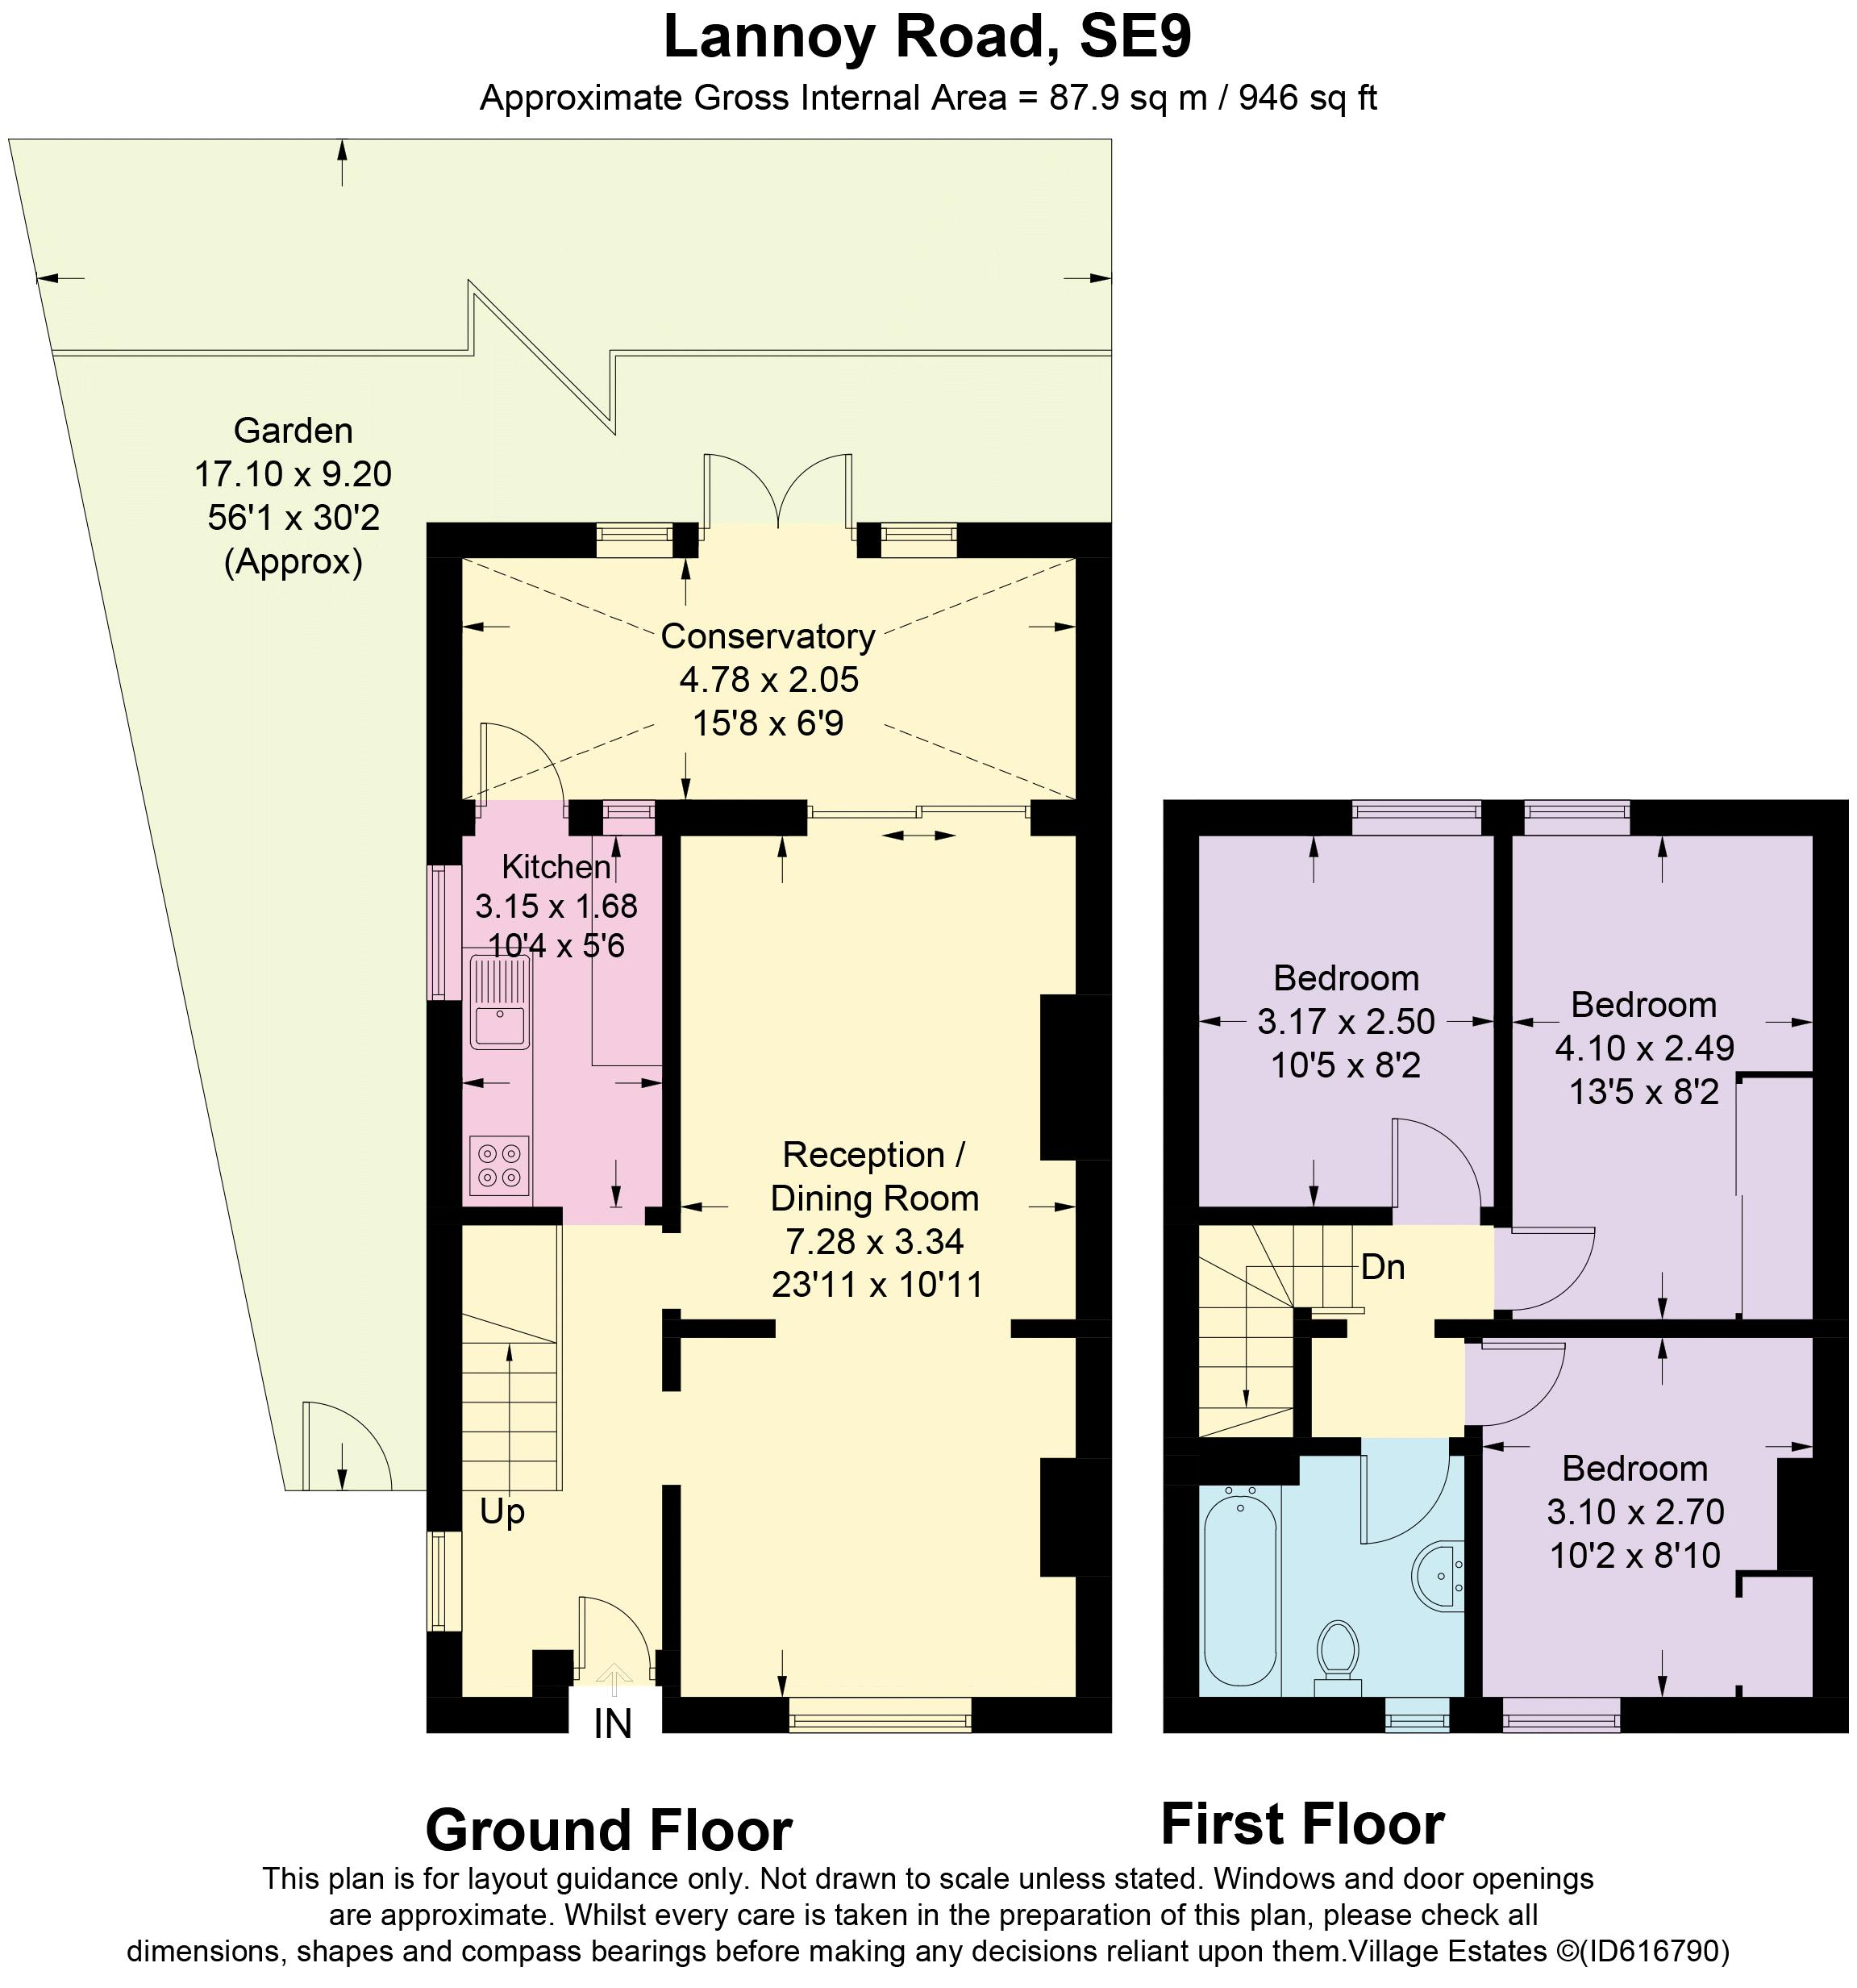 Lannoy Road Floorplan